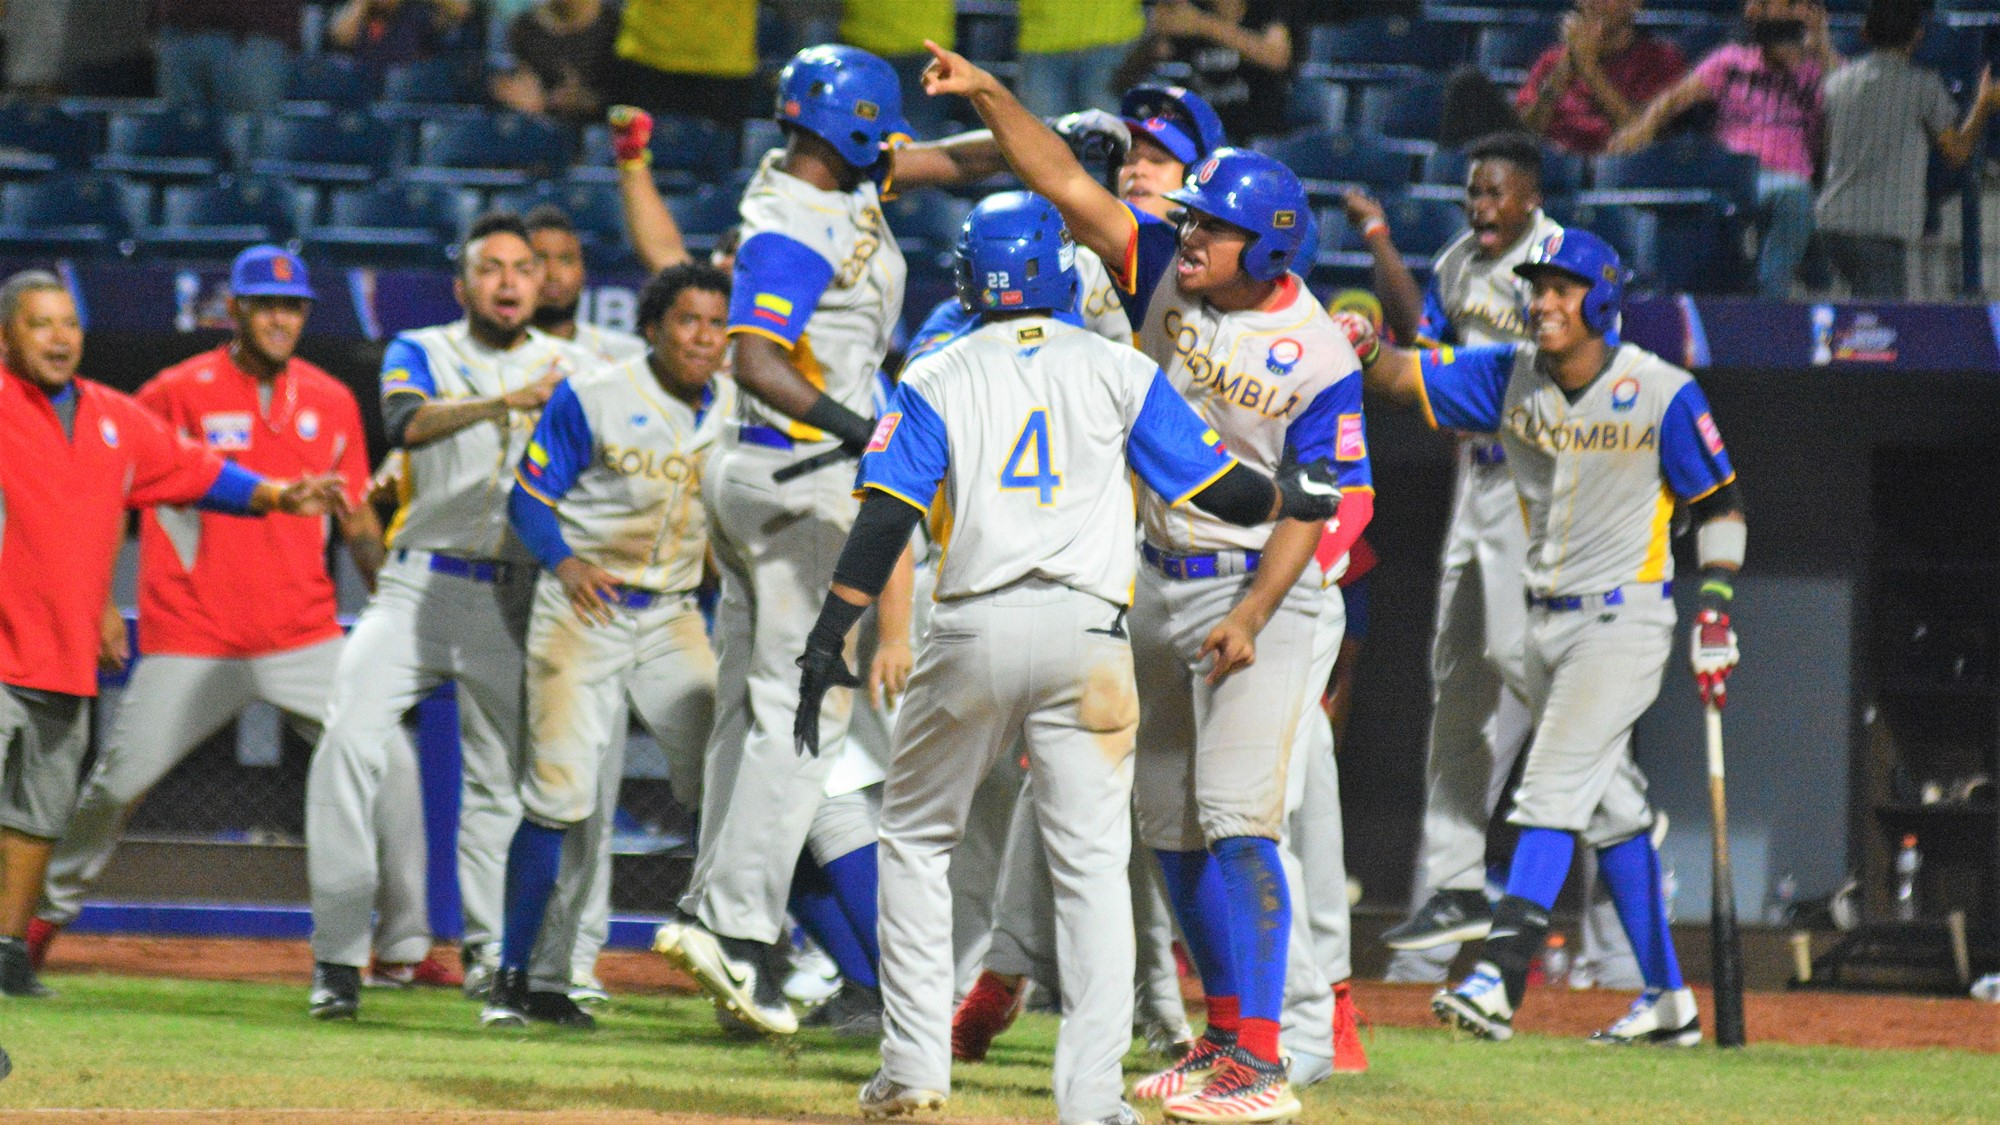 Colombia reversed the lead in the top of the seventh